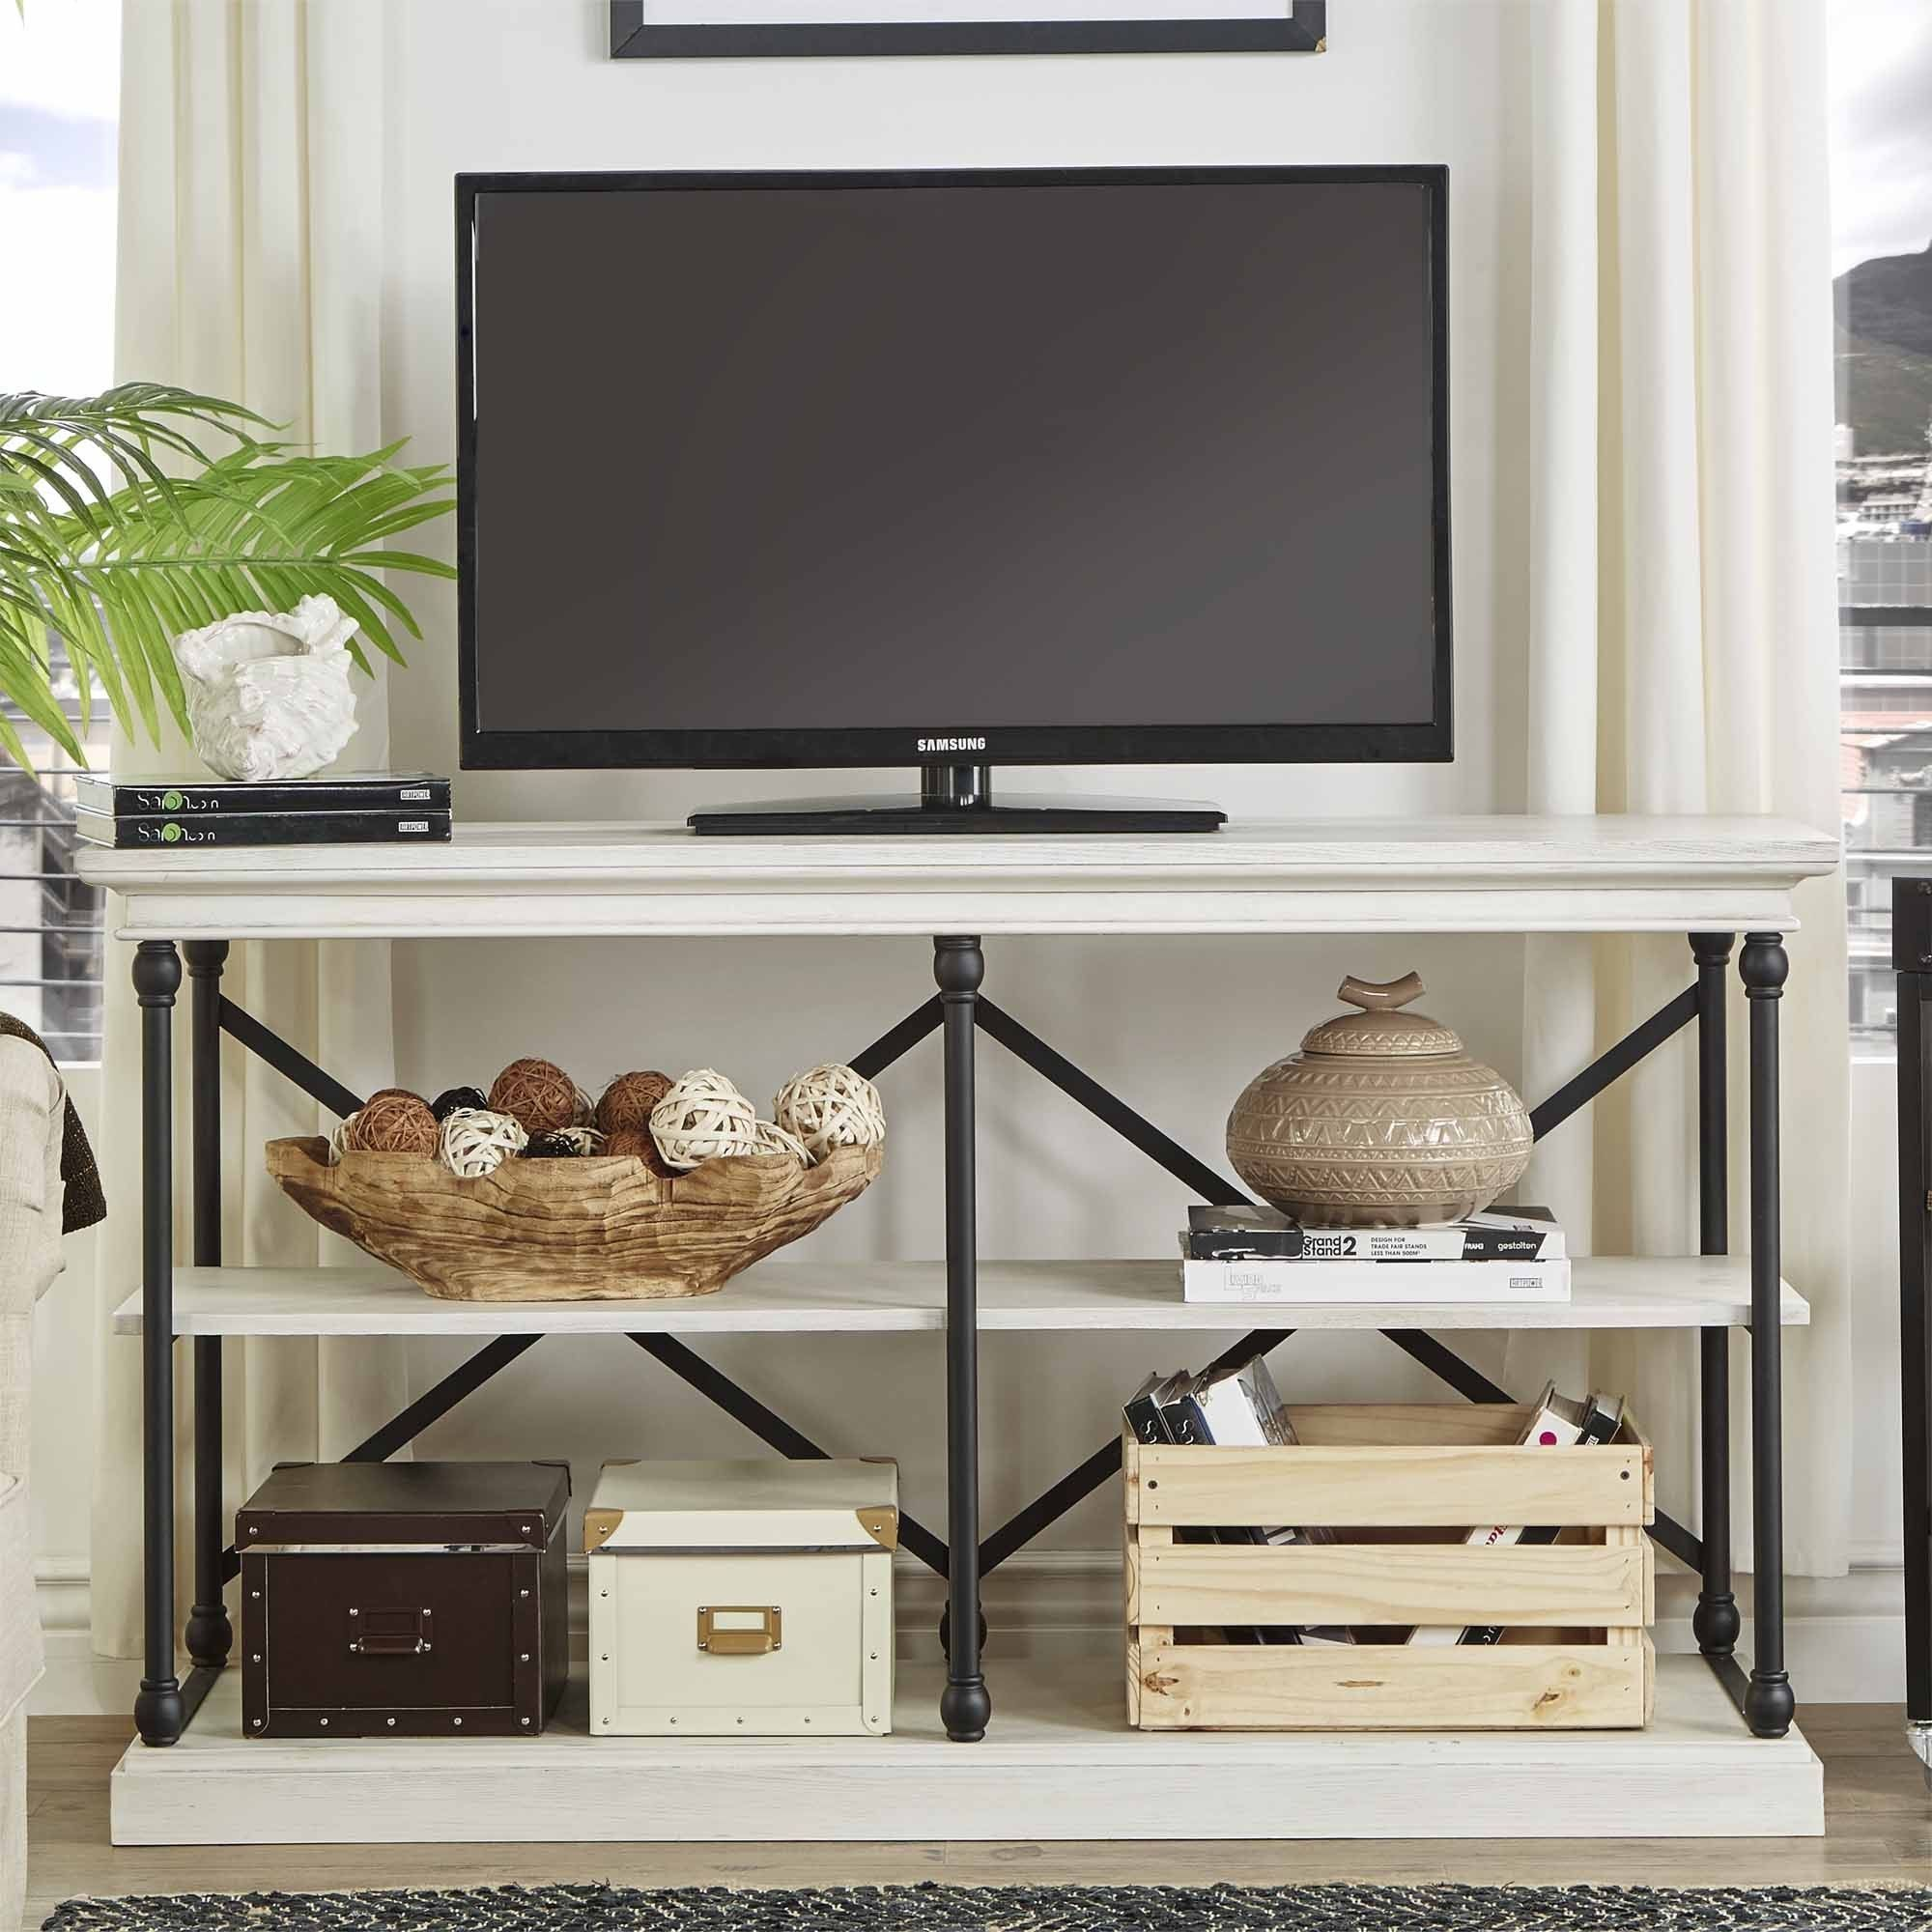 Barnstone Cornice Iron and Wood Entryway Console Table by iNSPIRE Q Artisan  by iNSPIRE Q